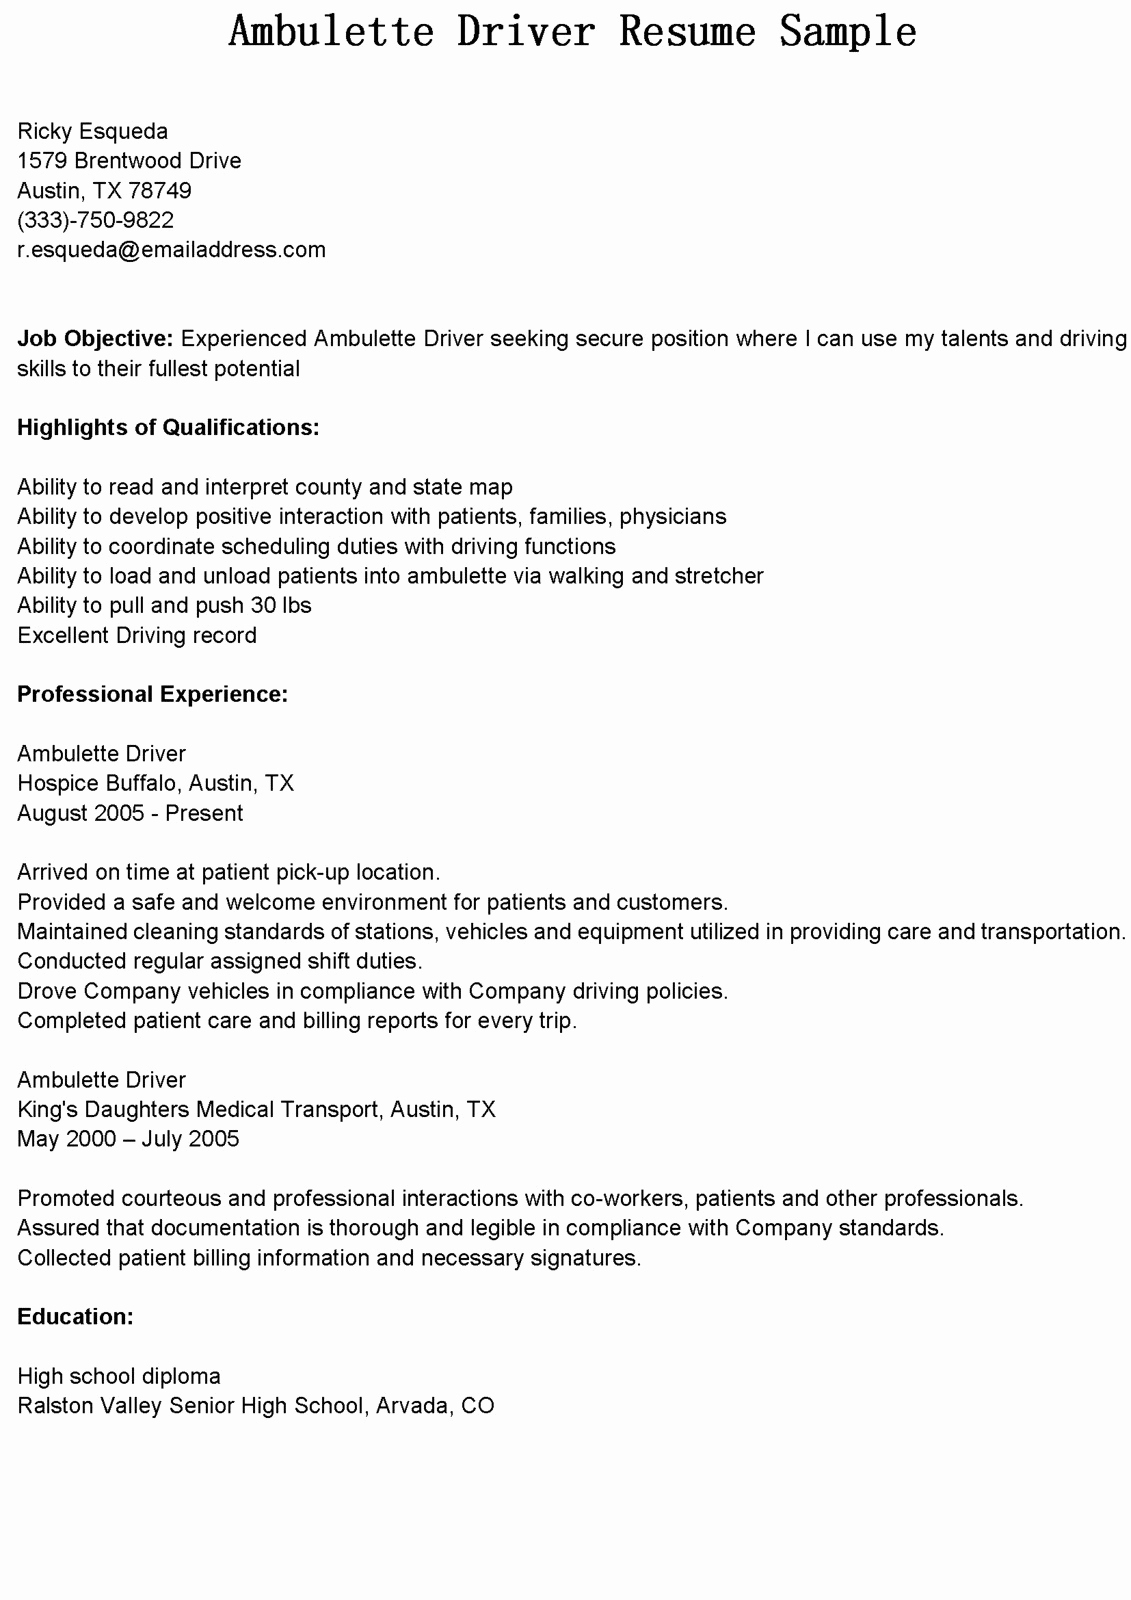 Cdl Truck Driver Job Description for Resume - Cdl Truck Driver Cover Letter Samples Truck Driving Resume Unique